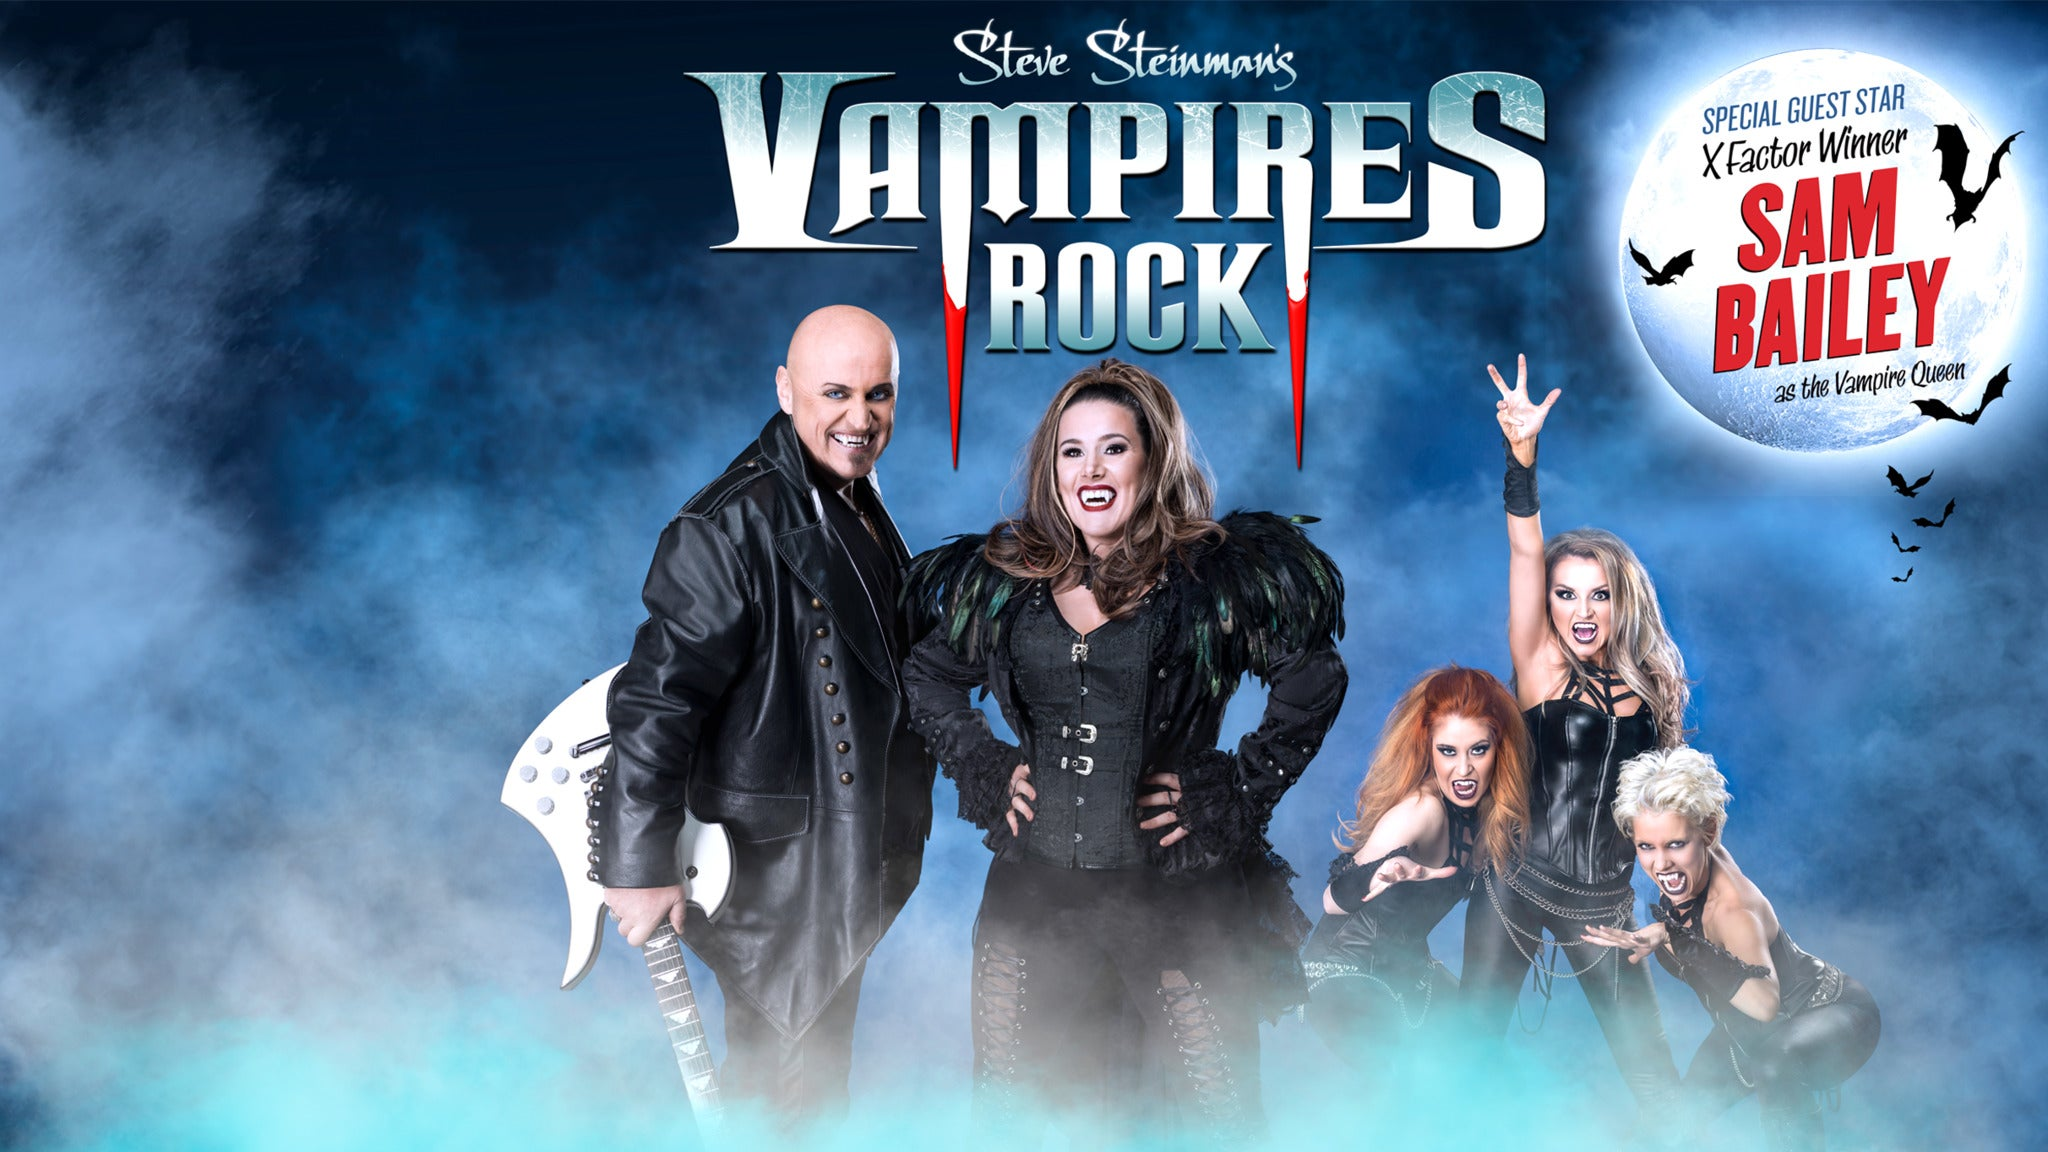 foto ticket Steve Steinman's Vampires Rock with Special Guest Sam Bailey